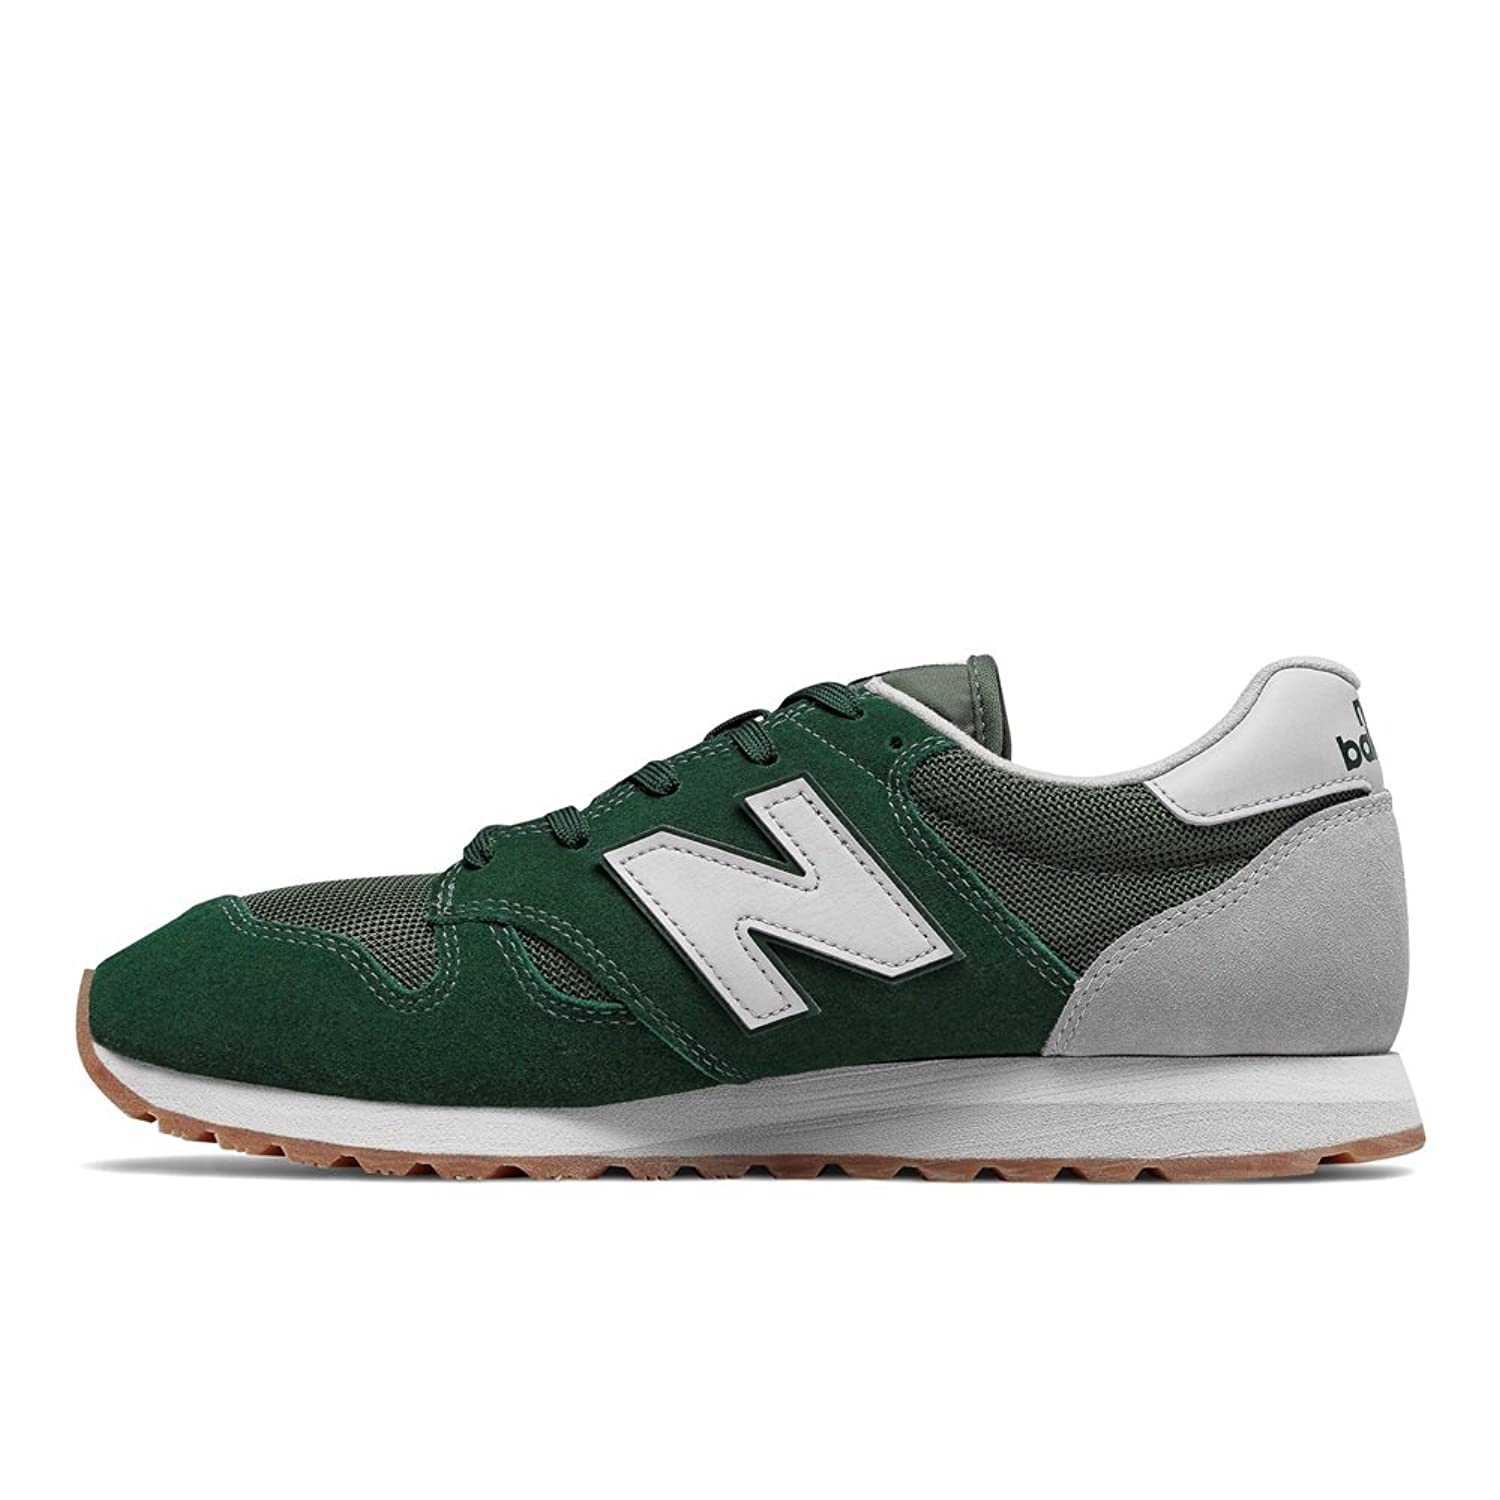 New Balance Uv Zapatillas Unisex Adulto